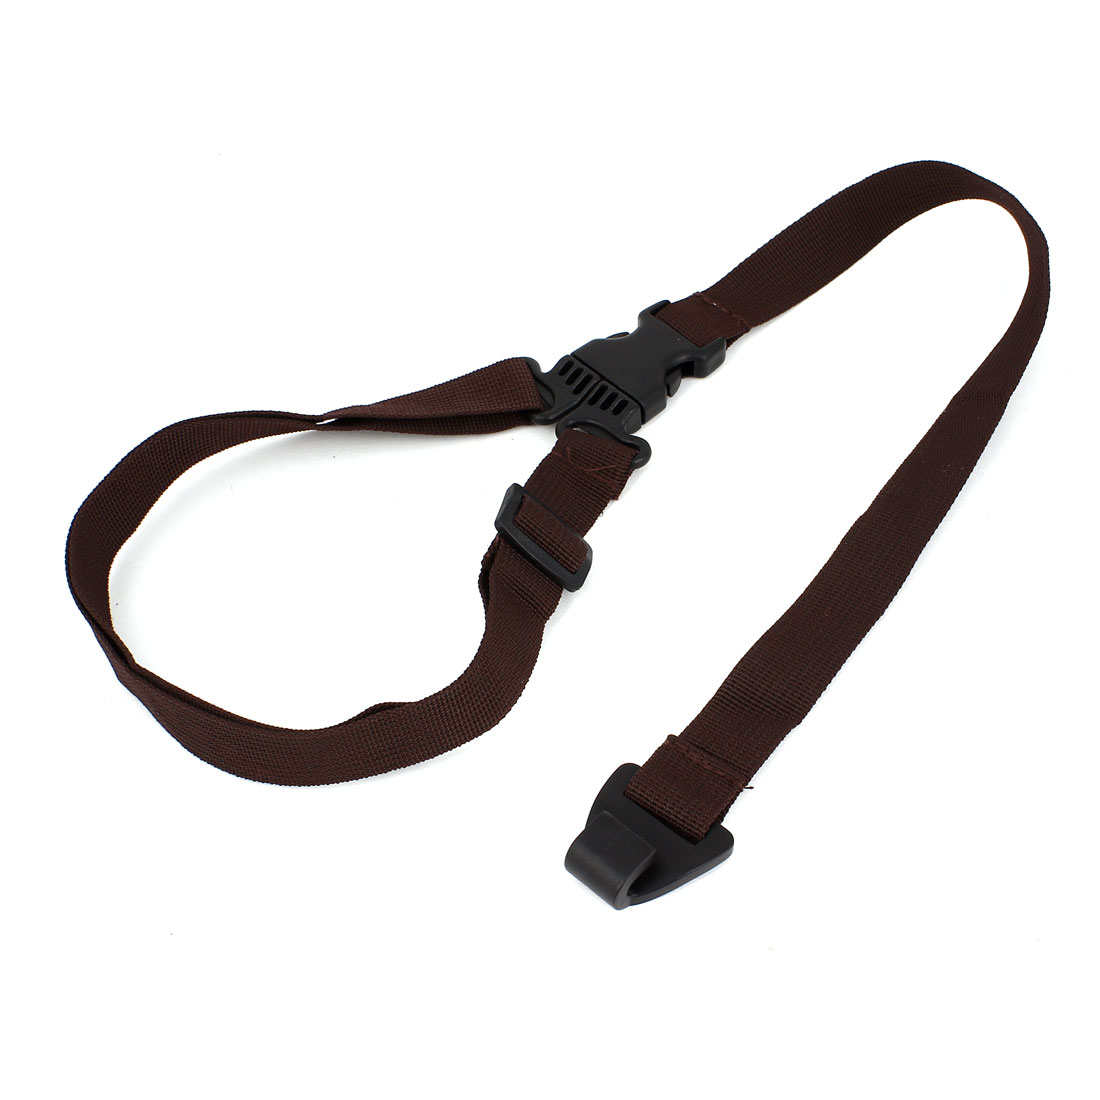 Unique Bargains Black Acoustic UKLL Guitar Side Release Buckle Dark Brown Nylon Strap